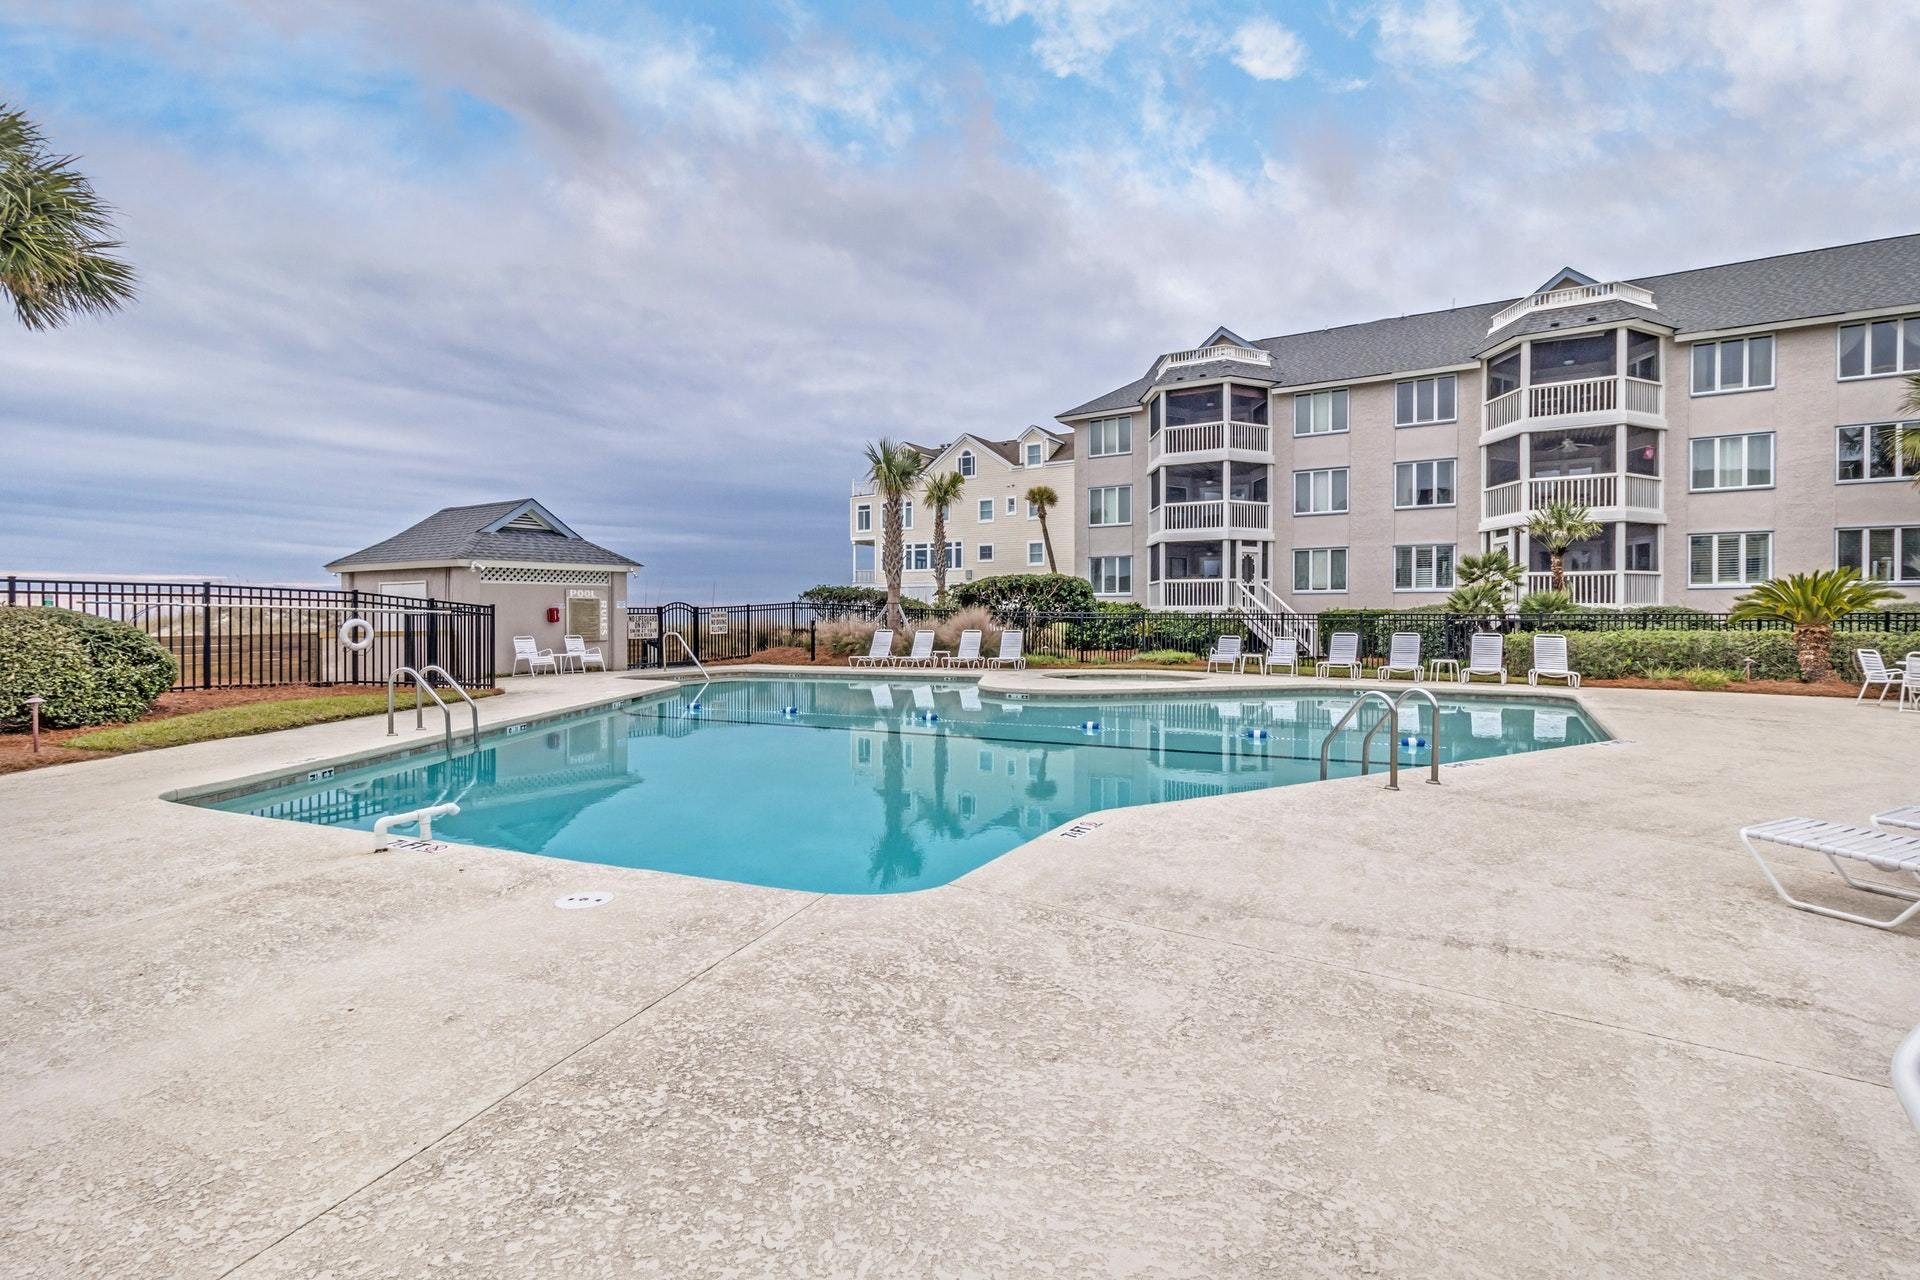 Wild Dunes Resort Homes For Sale - 102 I Tidewater, Isle of Palms, SC - 5